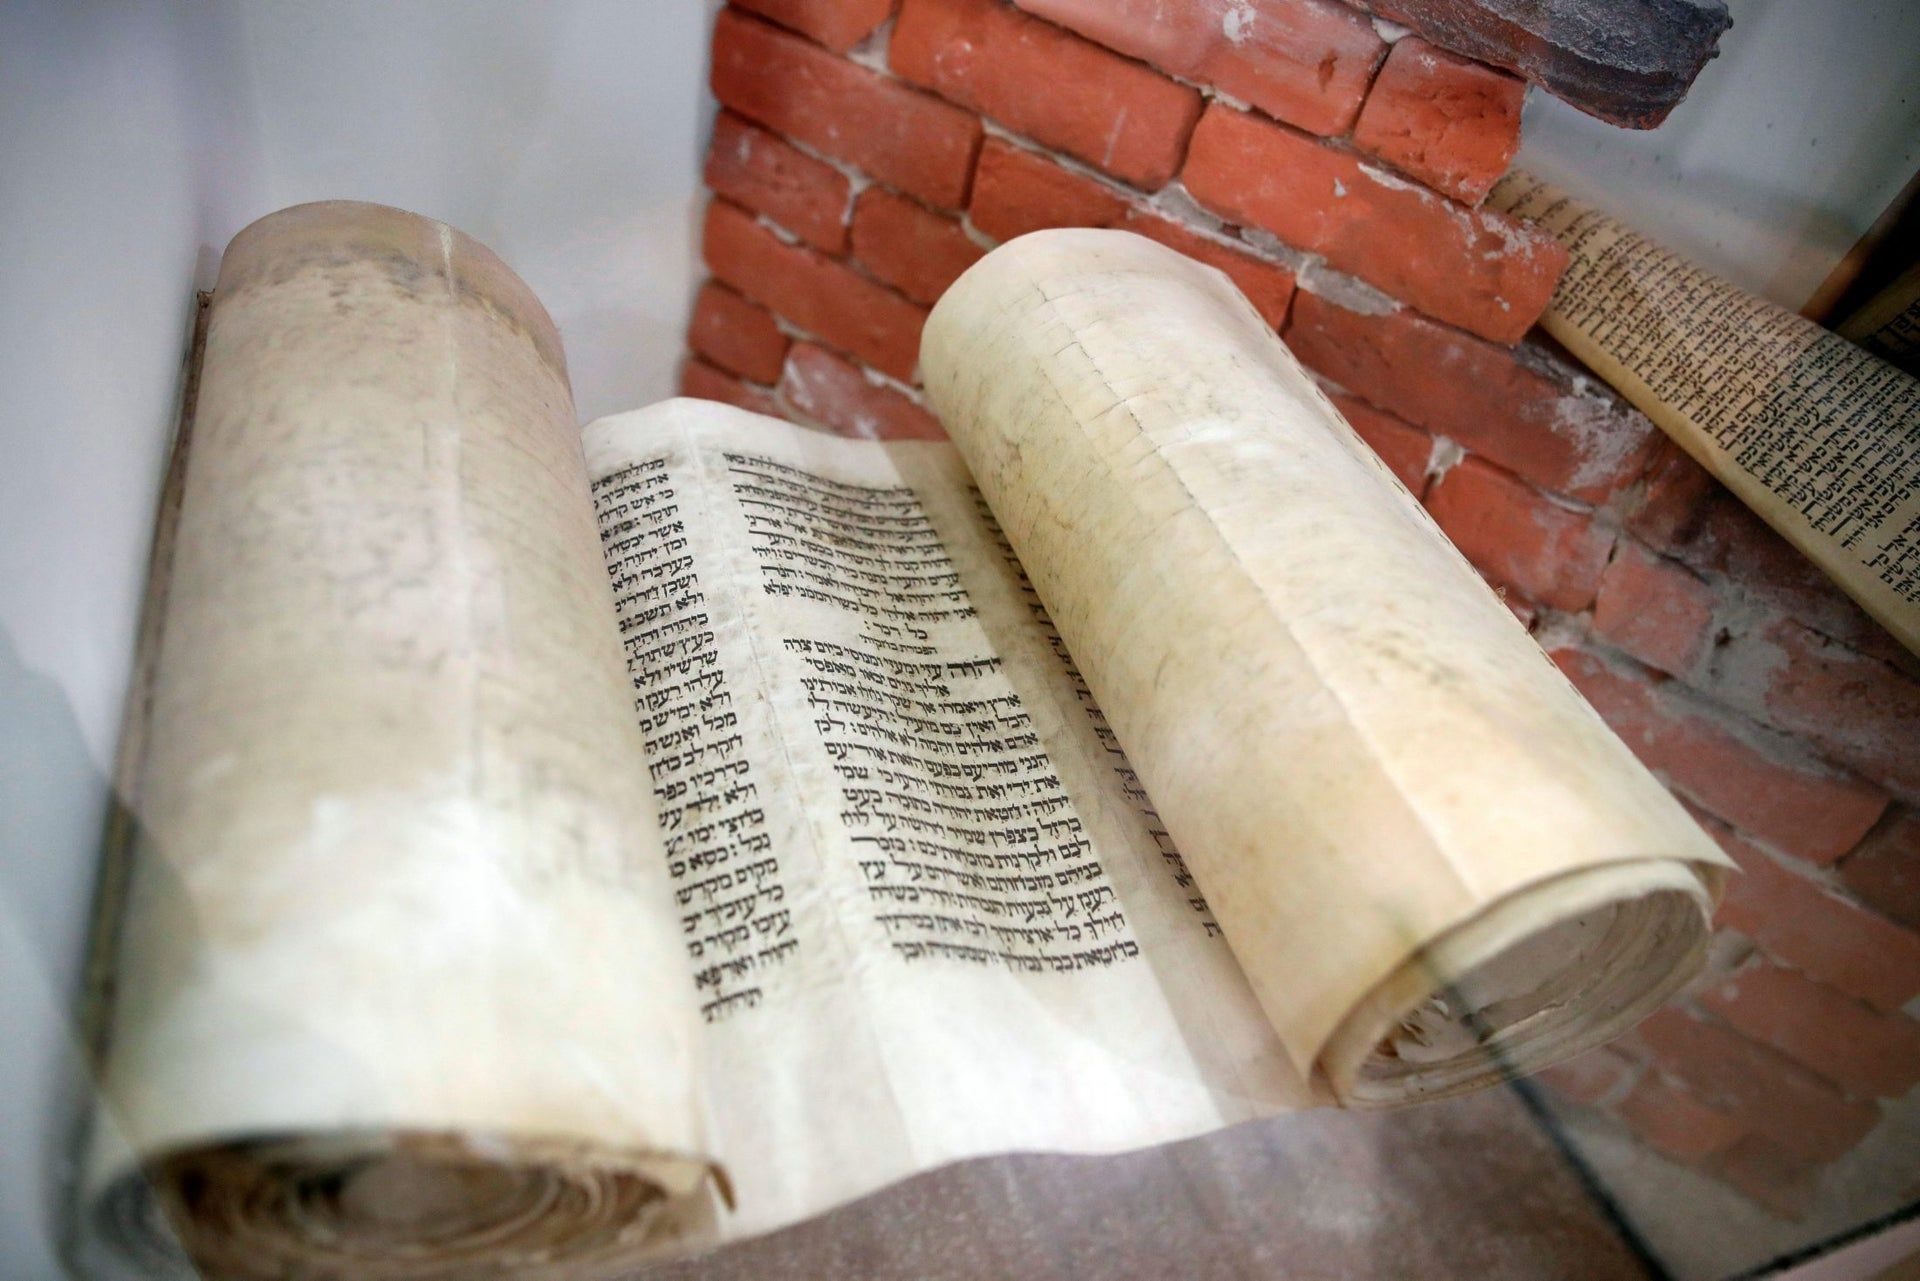 A Torah scroll is seen on display at the Babylonian Jewry Heritage Center in Or Yehuda, Israel, April 16, 2018. Picture taken April 16, 2018.